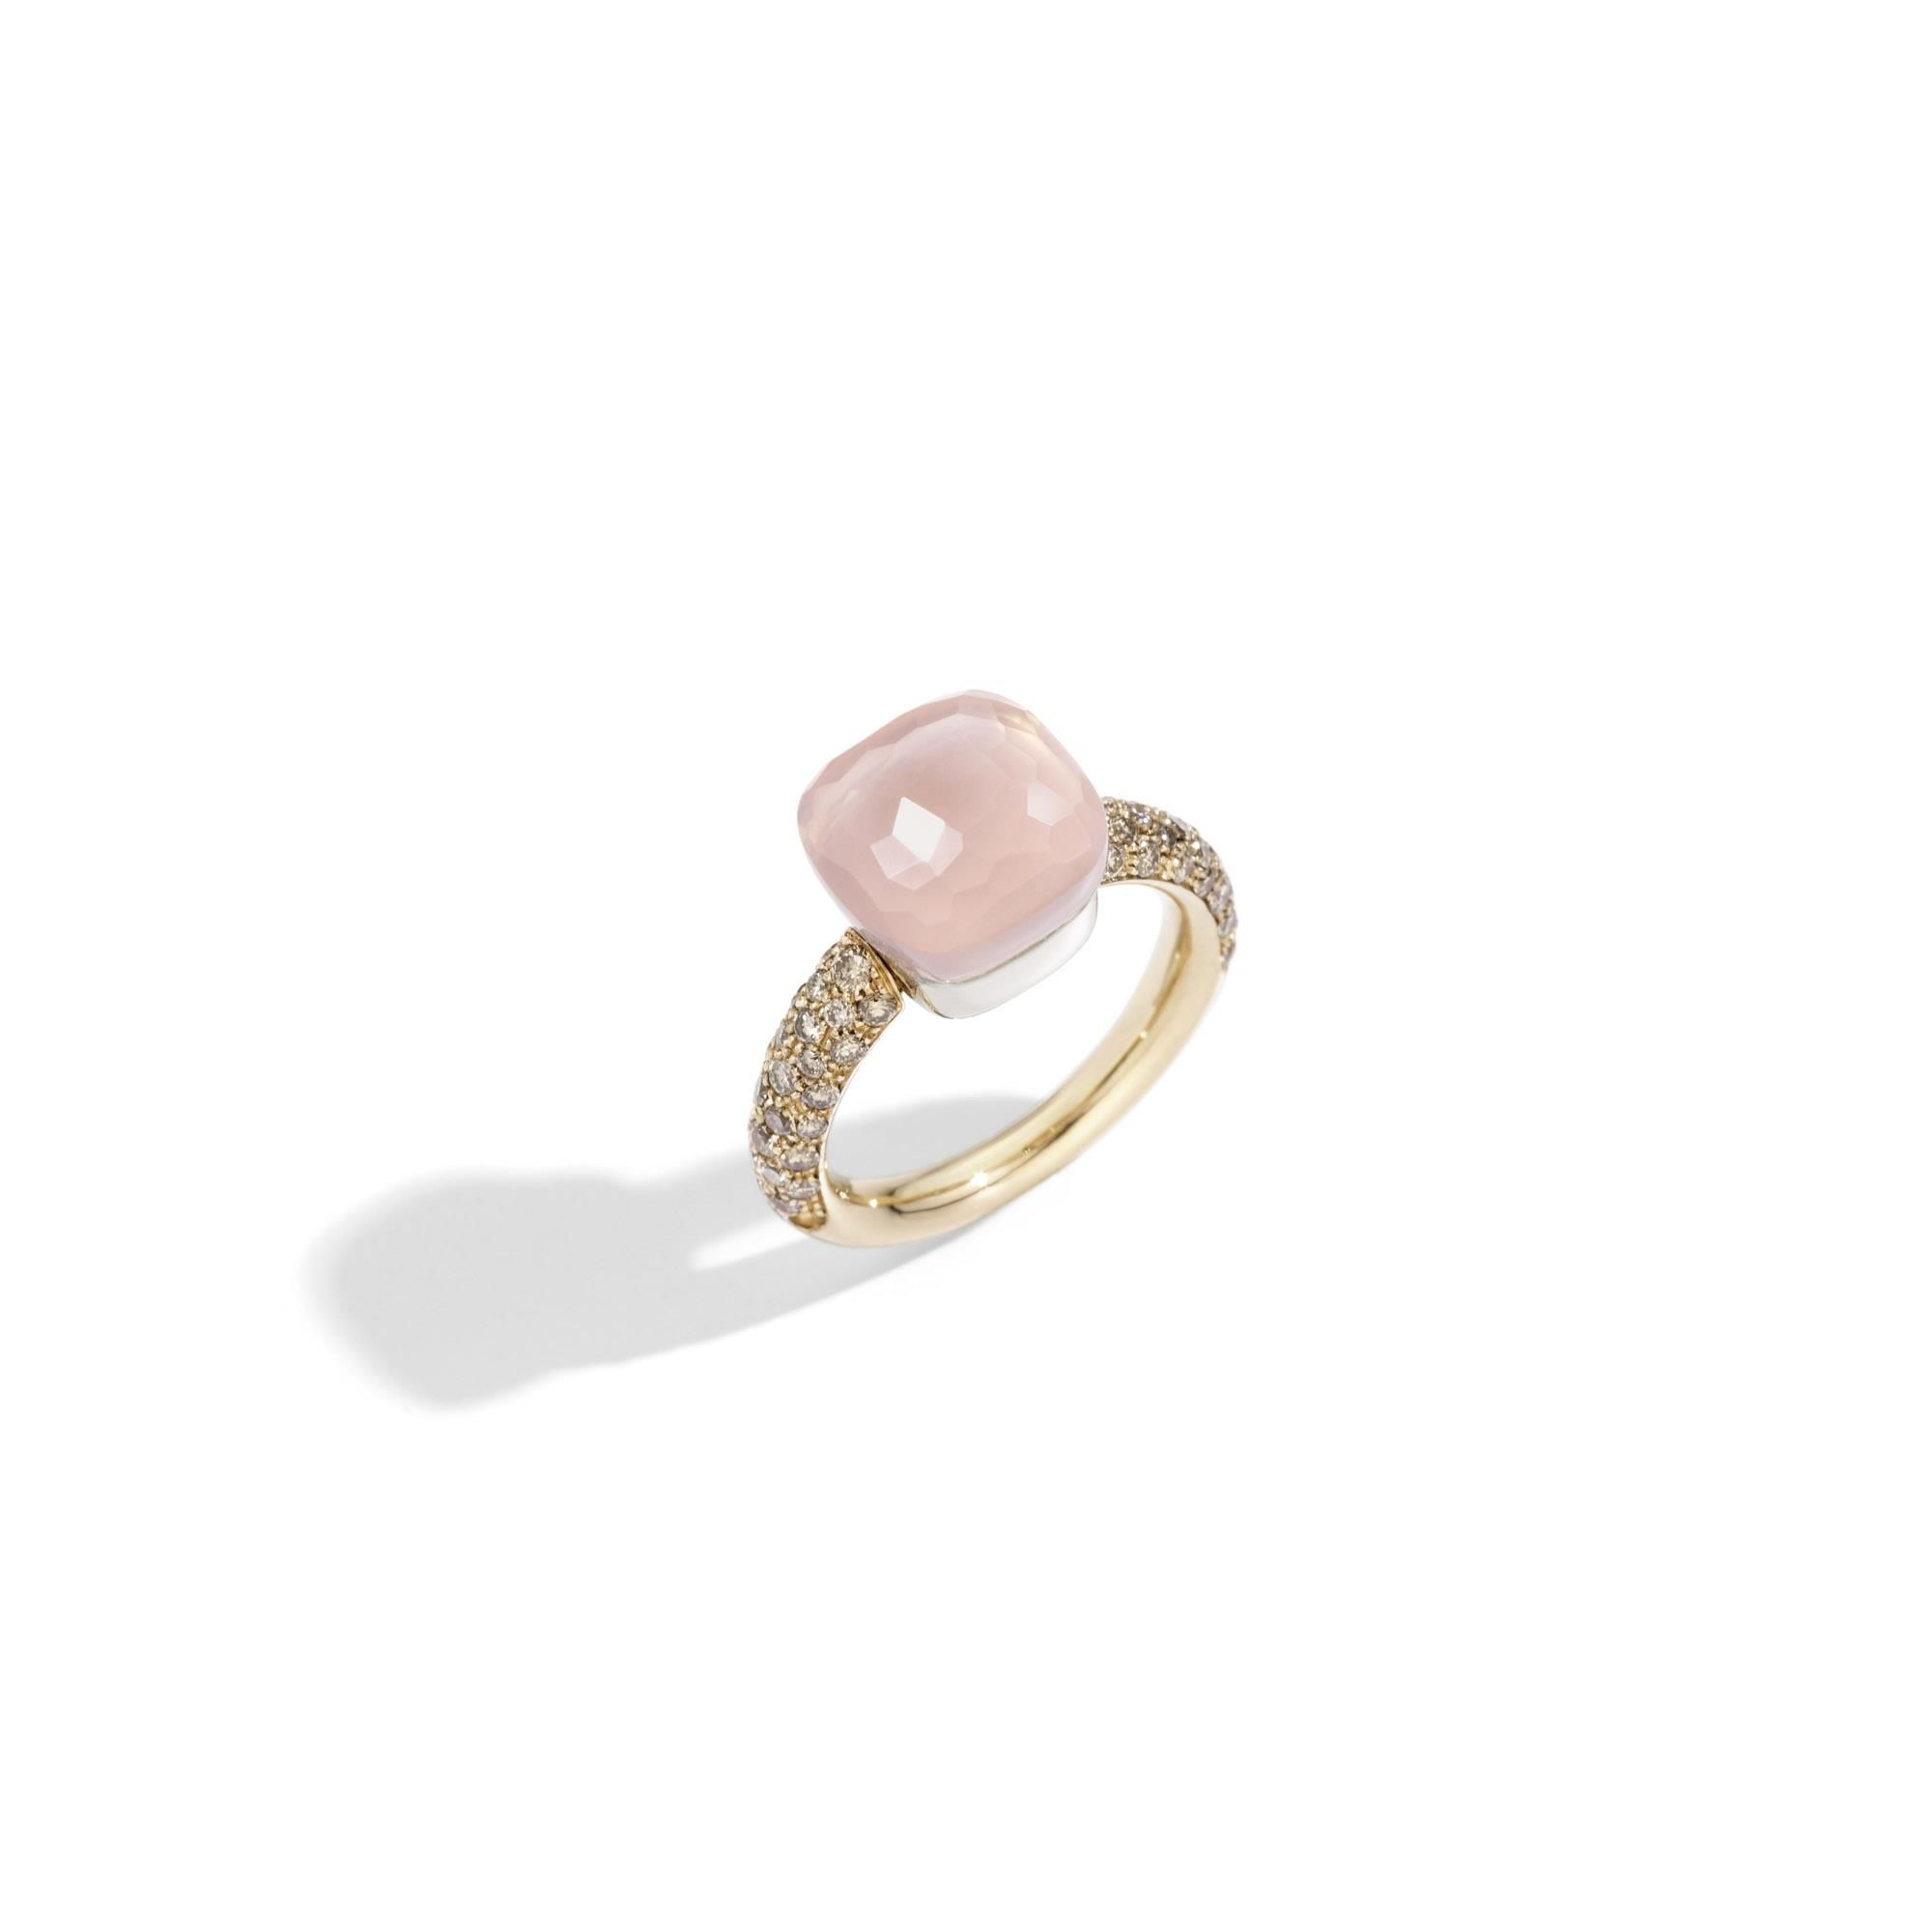 Pomellato Nudo Classic Ring in Rose Gold with Garnet A